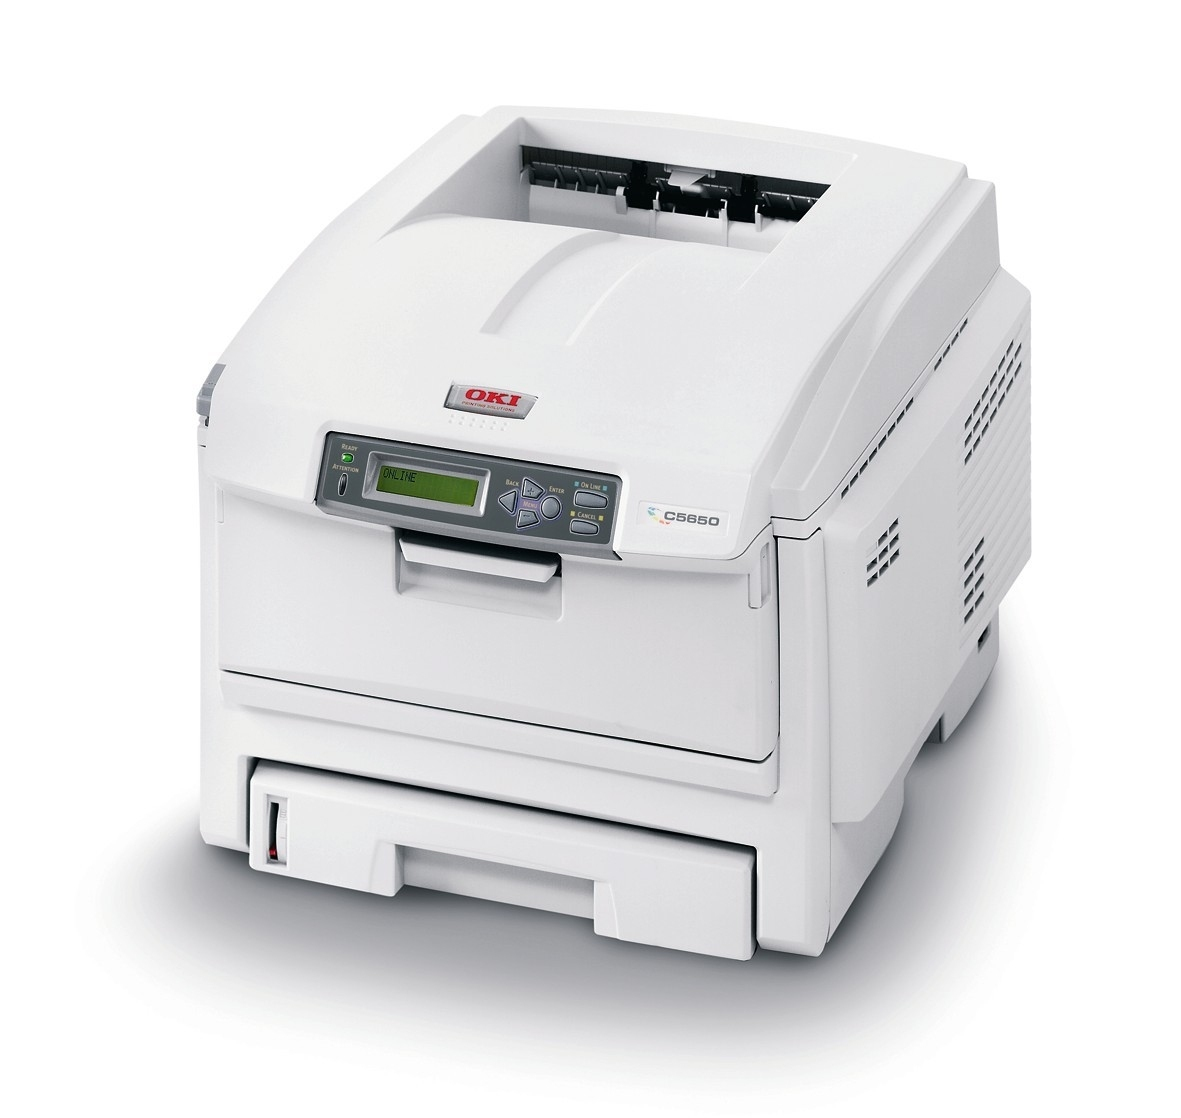 01212601 OKI C5650DN C5650 A4 Network USB Duplex Workgroup Colour Laser Printer - Refurbished with 3 months RTB warranty